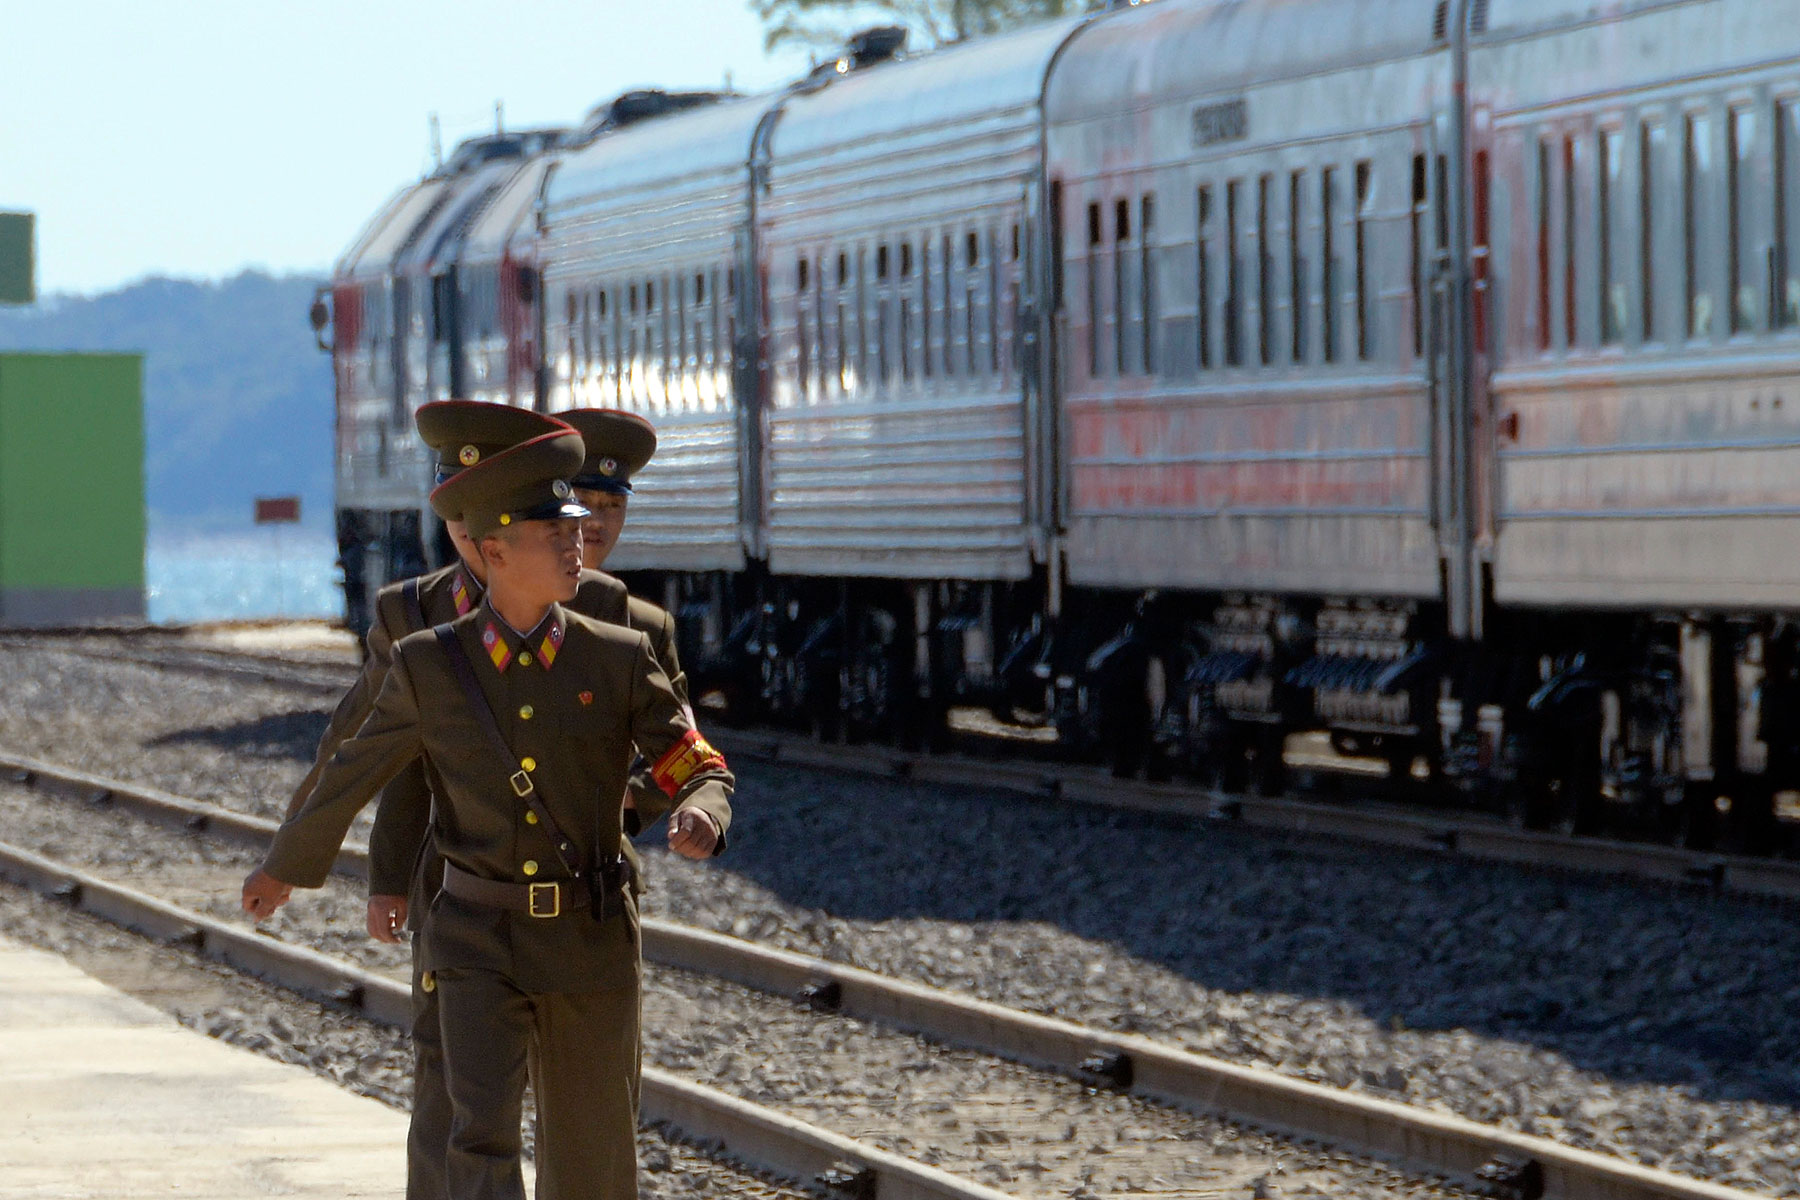 North Korean soldiers march near trains after a ceremony to mark the re-opening of a railway link between Russia and North Korea at the port of Rajin Sept. 22, 2013